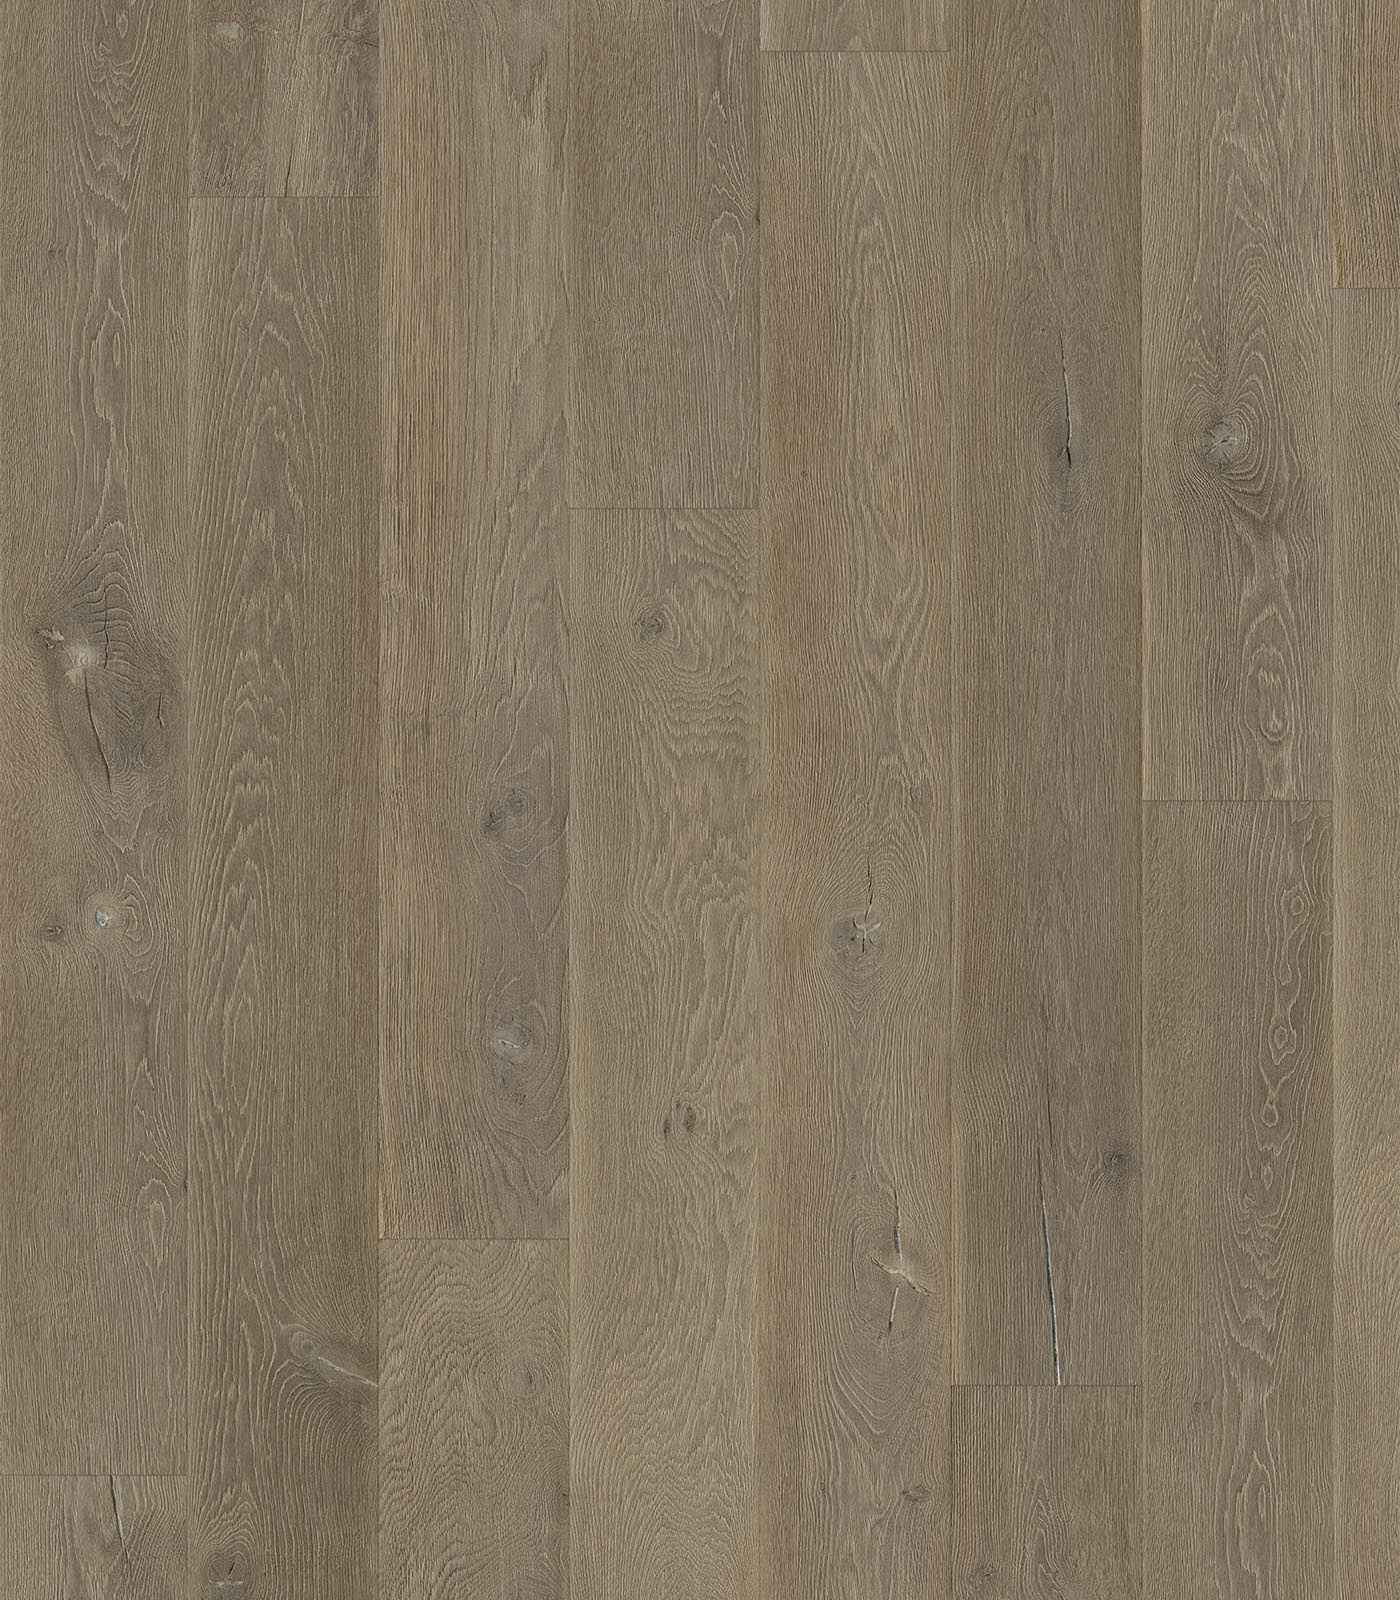 Luxembourg-European Oak floors-Heritage collection-flat